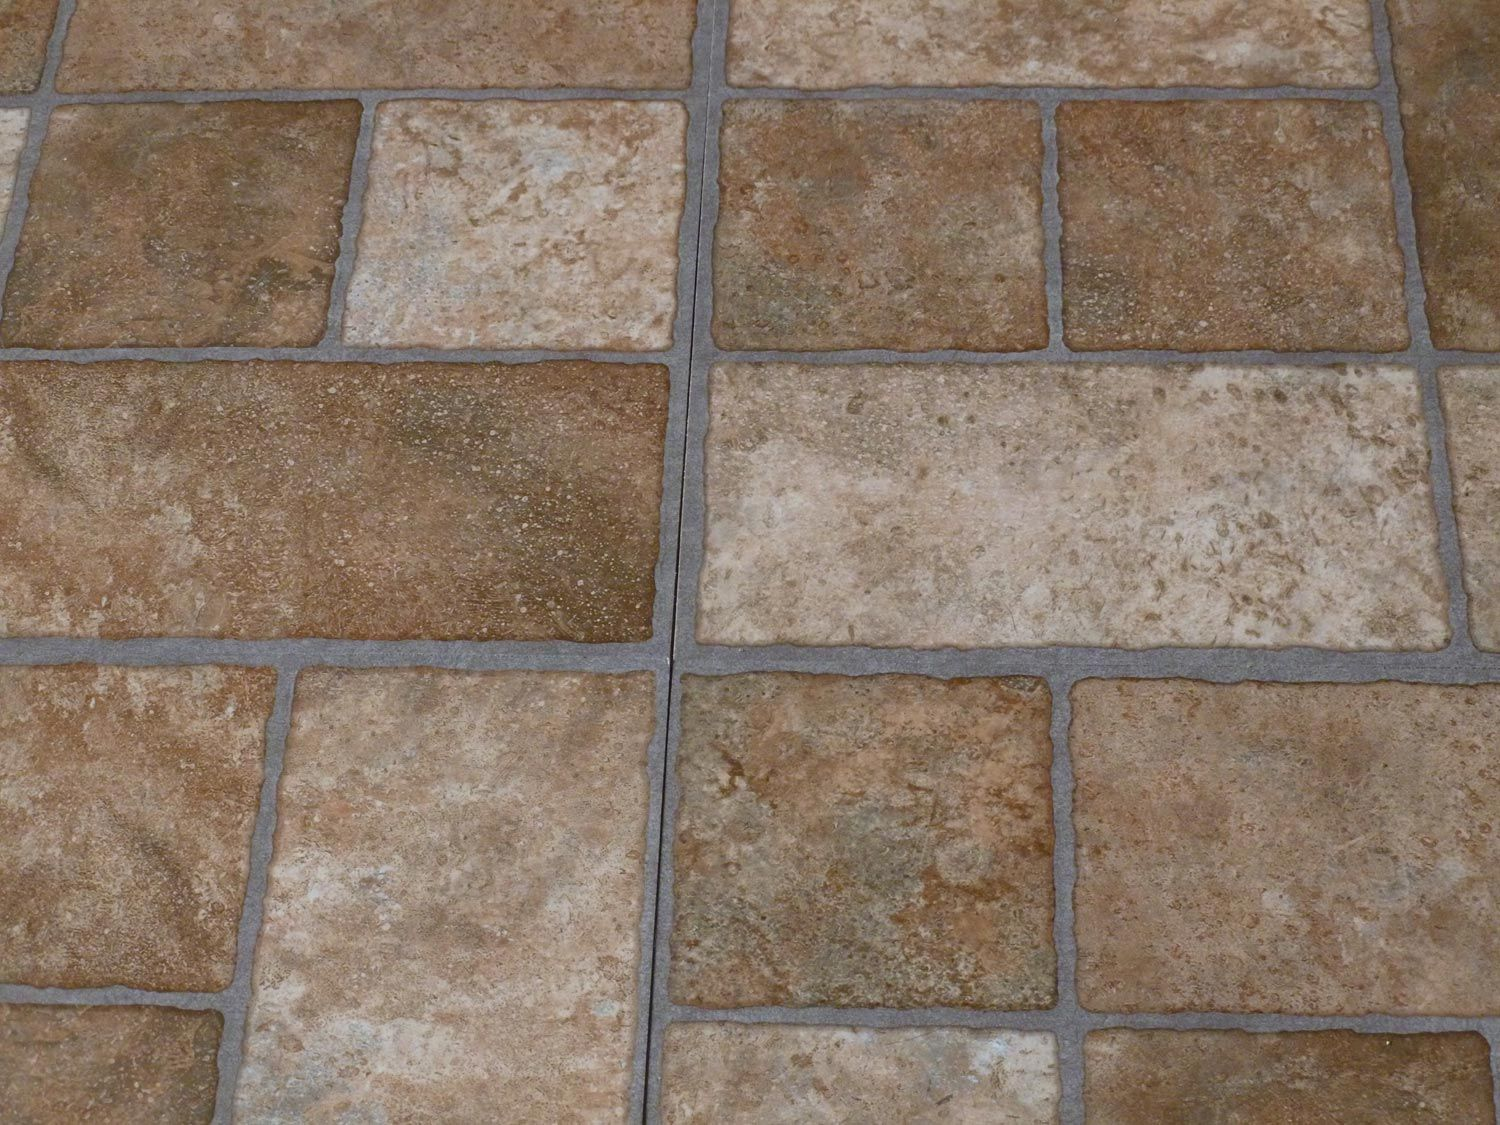 Asbestos Vinyl Tiles Basics and Guide to Removal